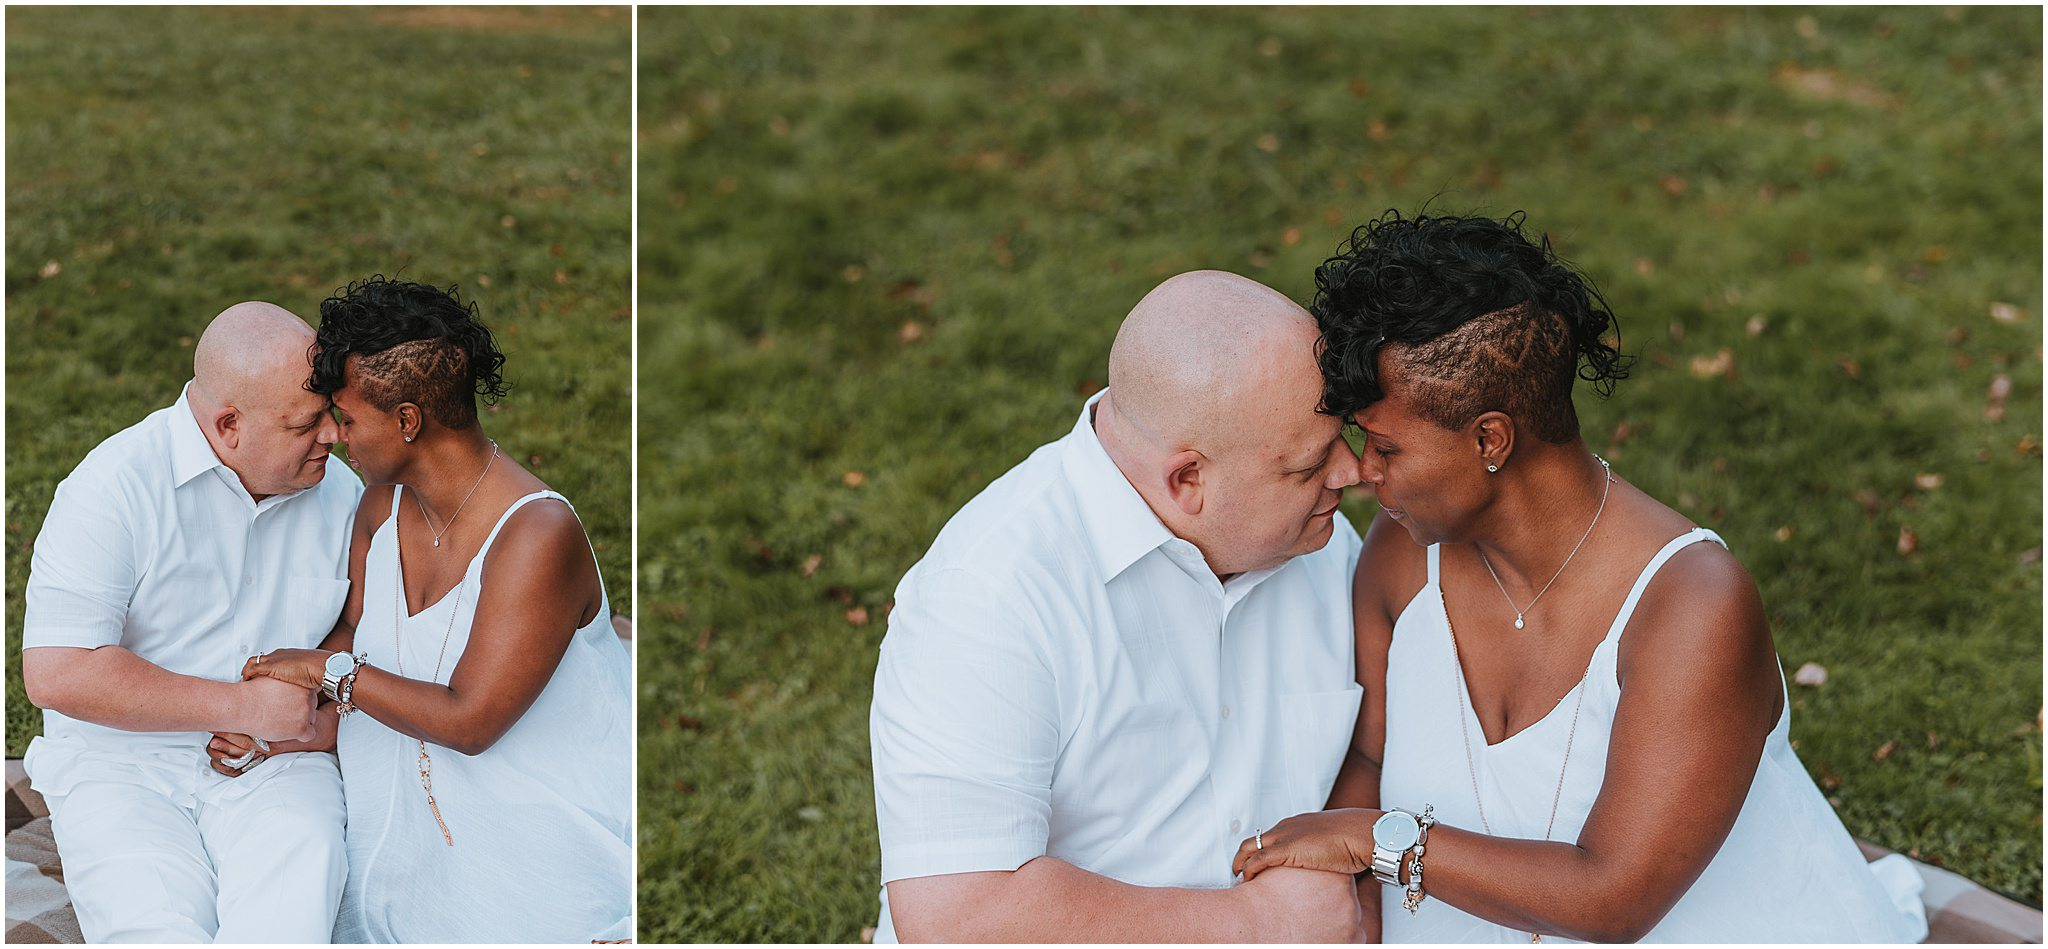 Maria & Brian Engagement session Peaks of Otter Lodge Bedford VA 78